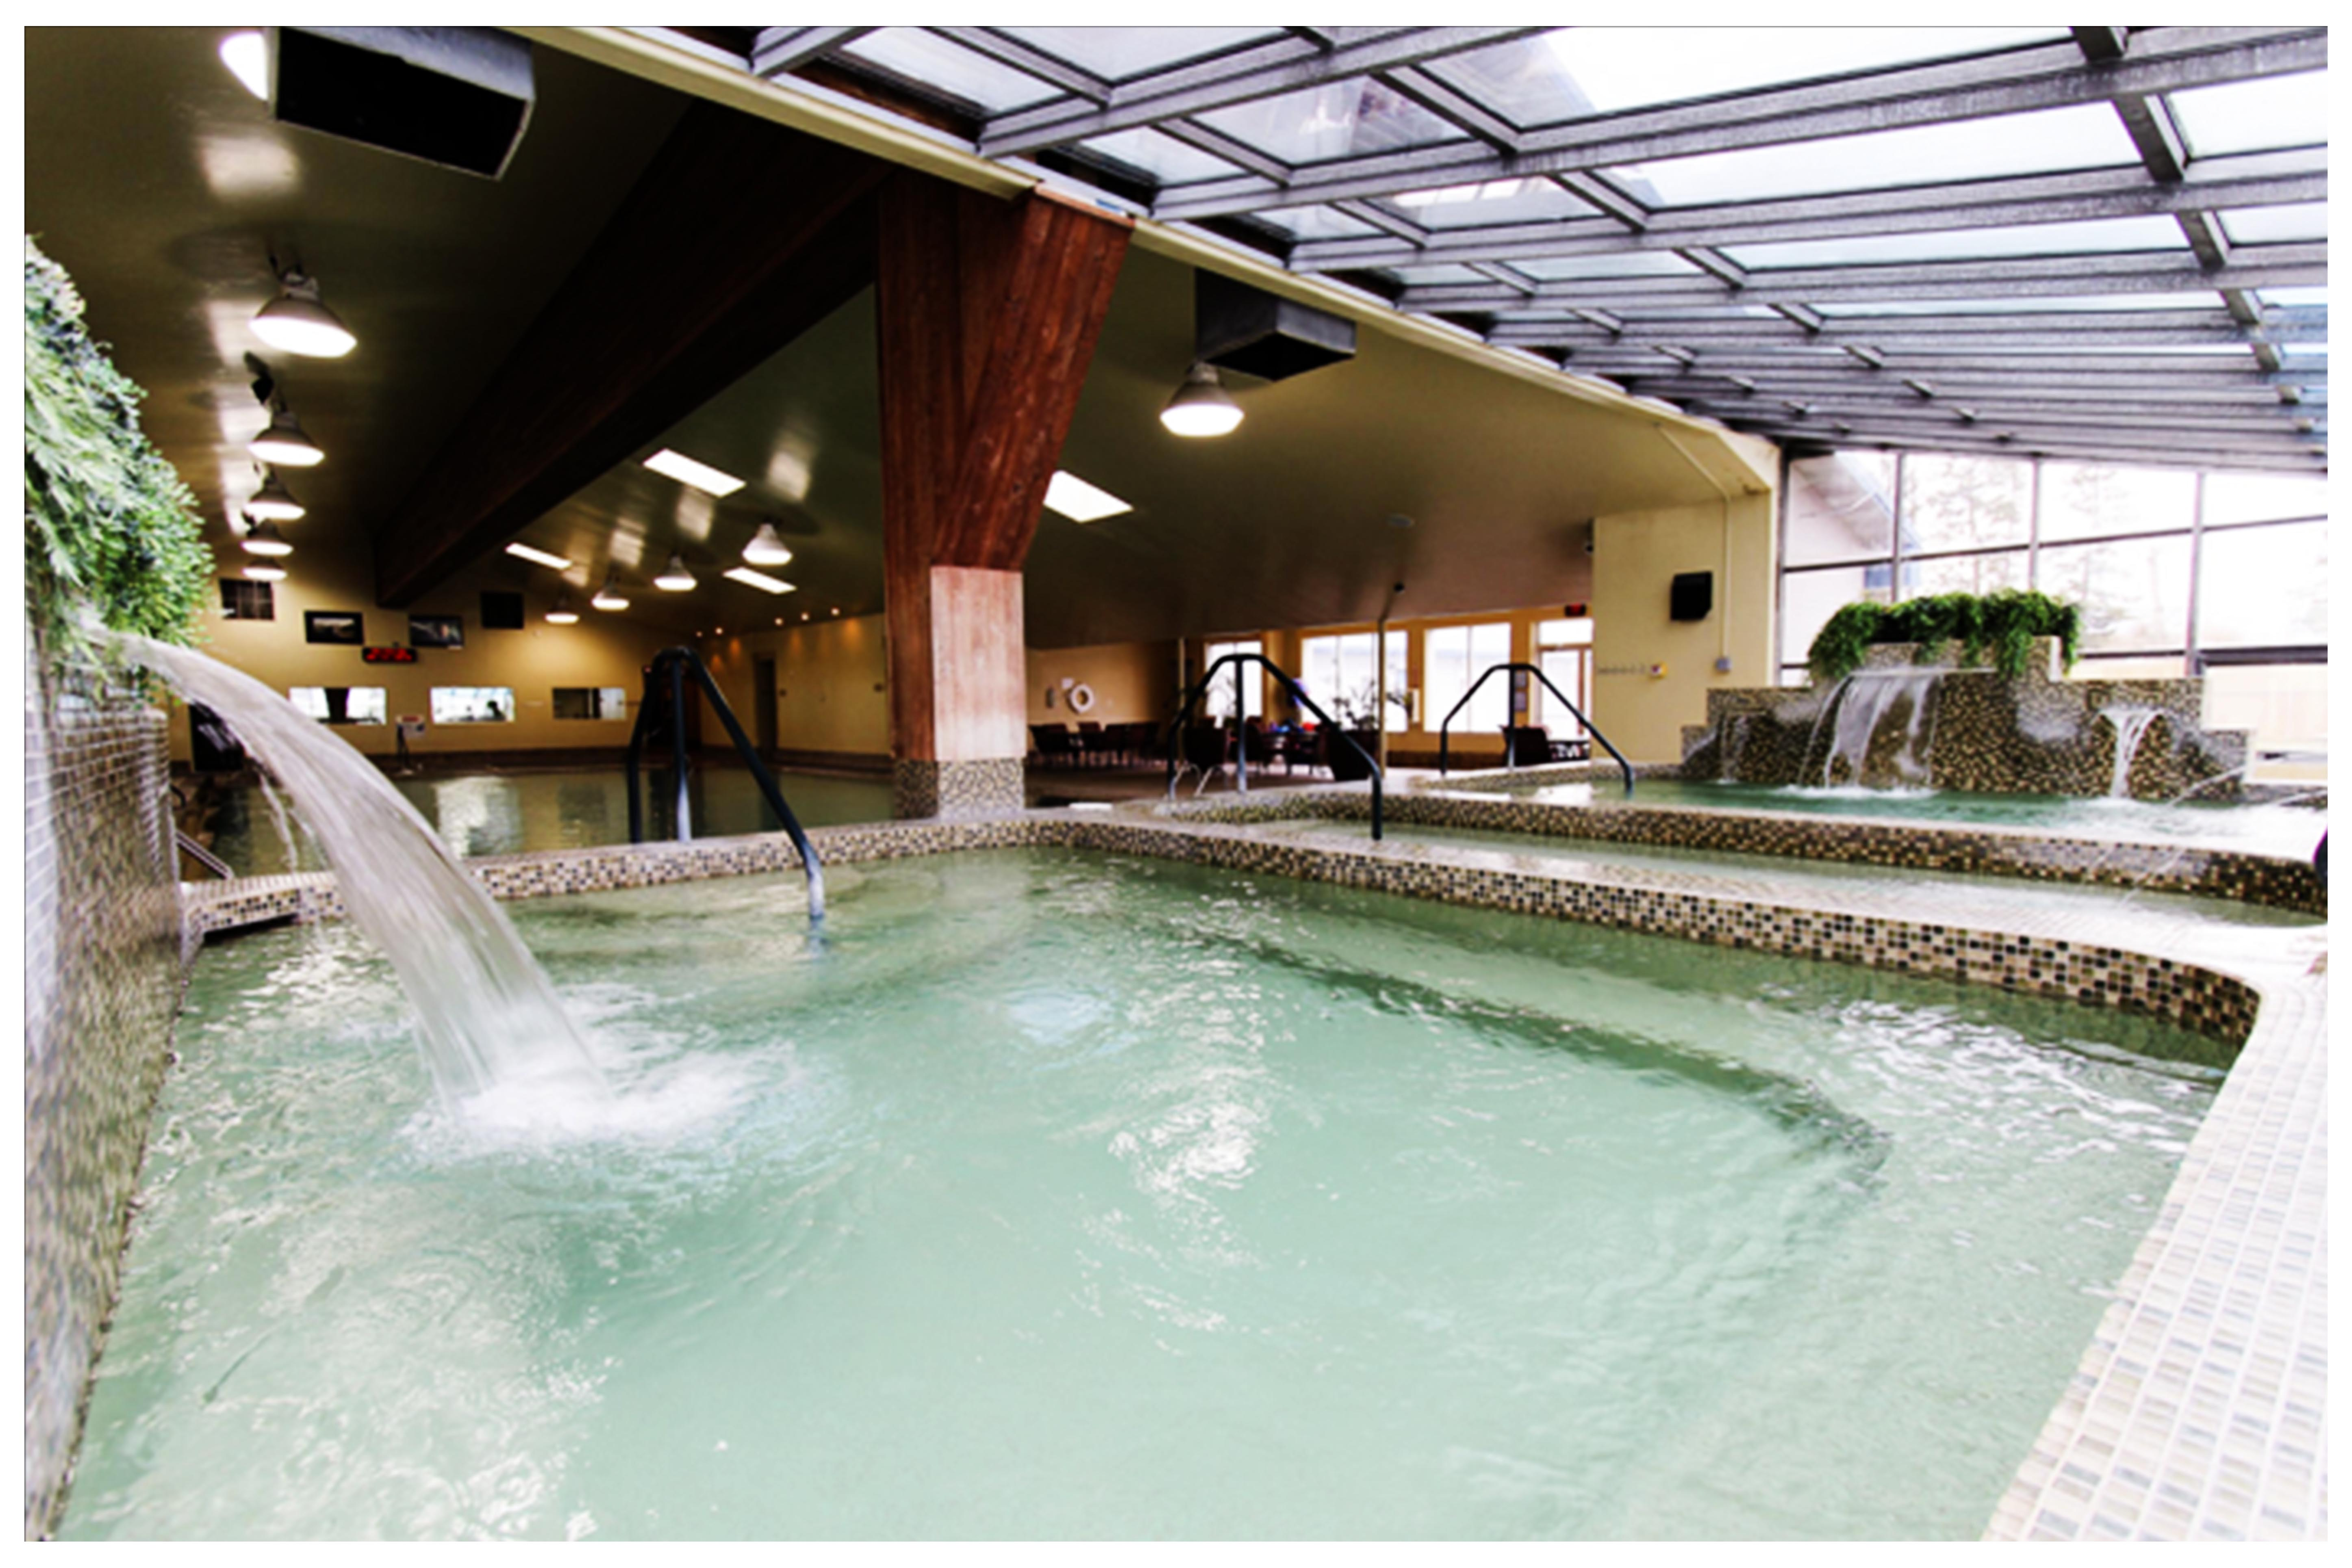 CVB_Hotsprings-2020-2_c